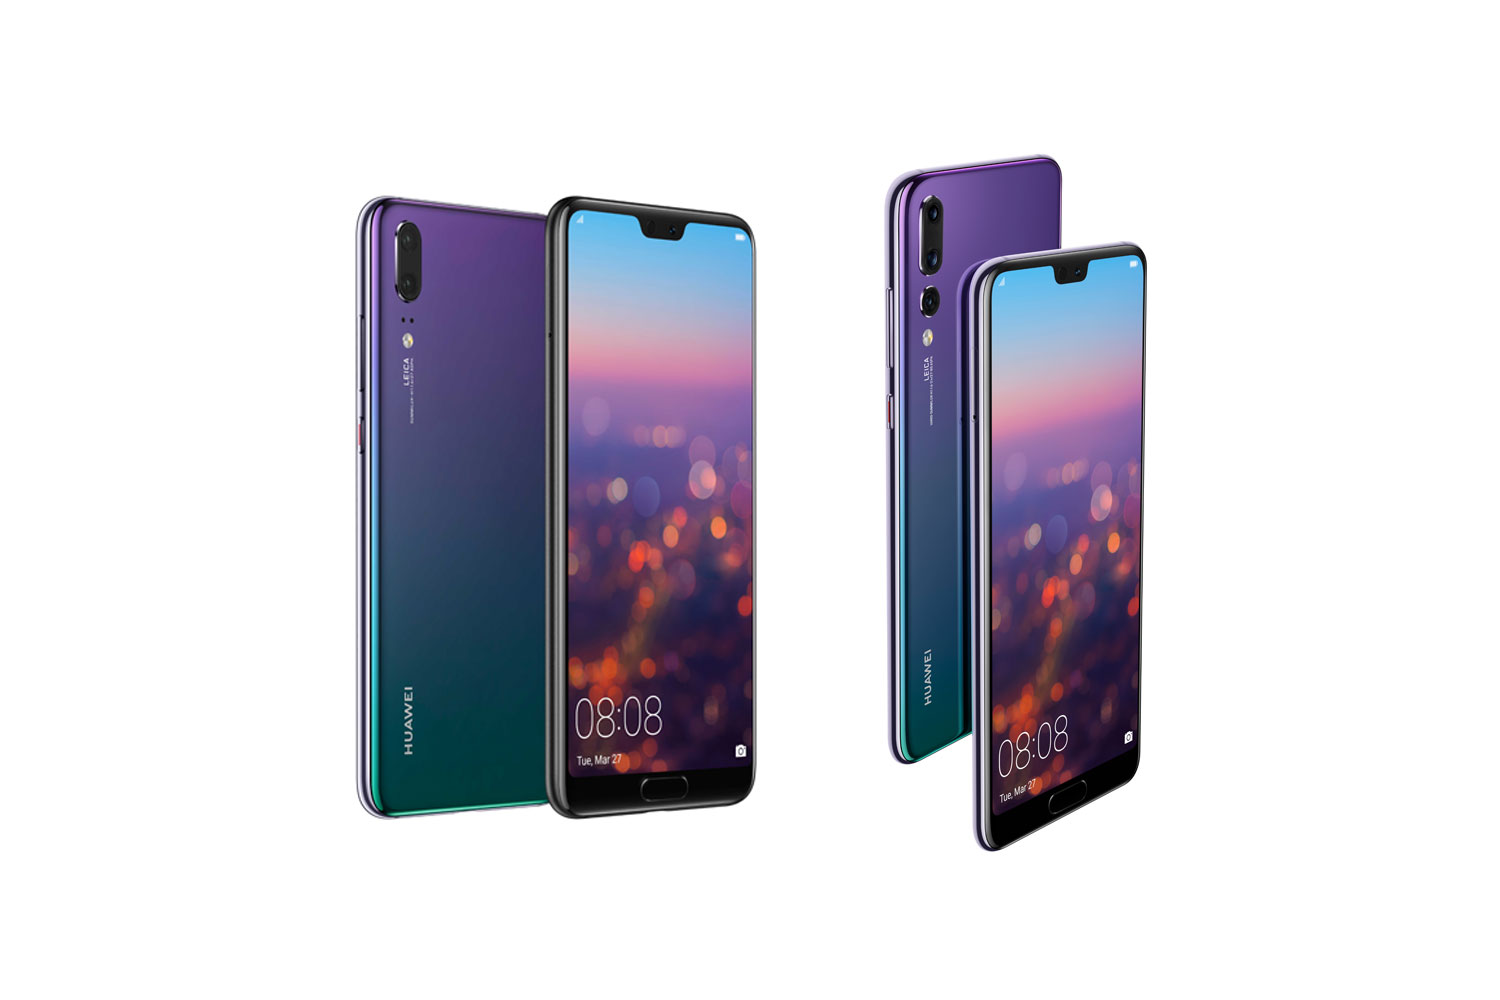 3f3a8c8a1af2 Huawei P20 and P20 Pro Officially Announced — GadgetMTech